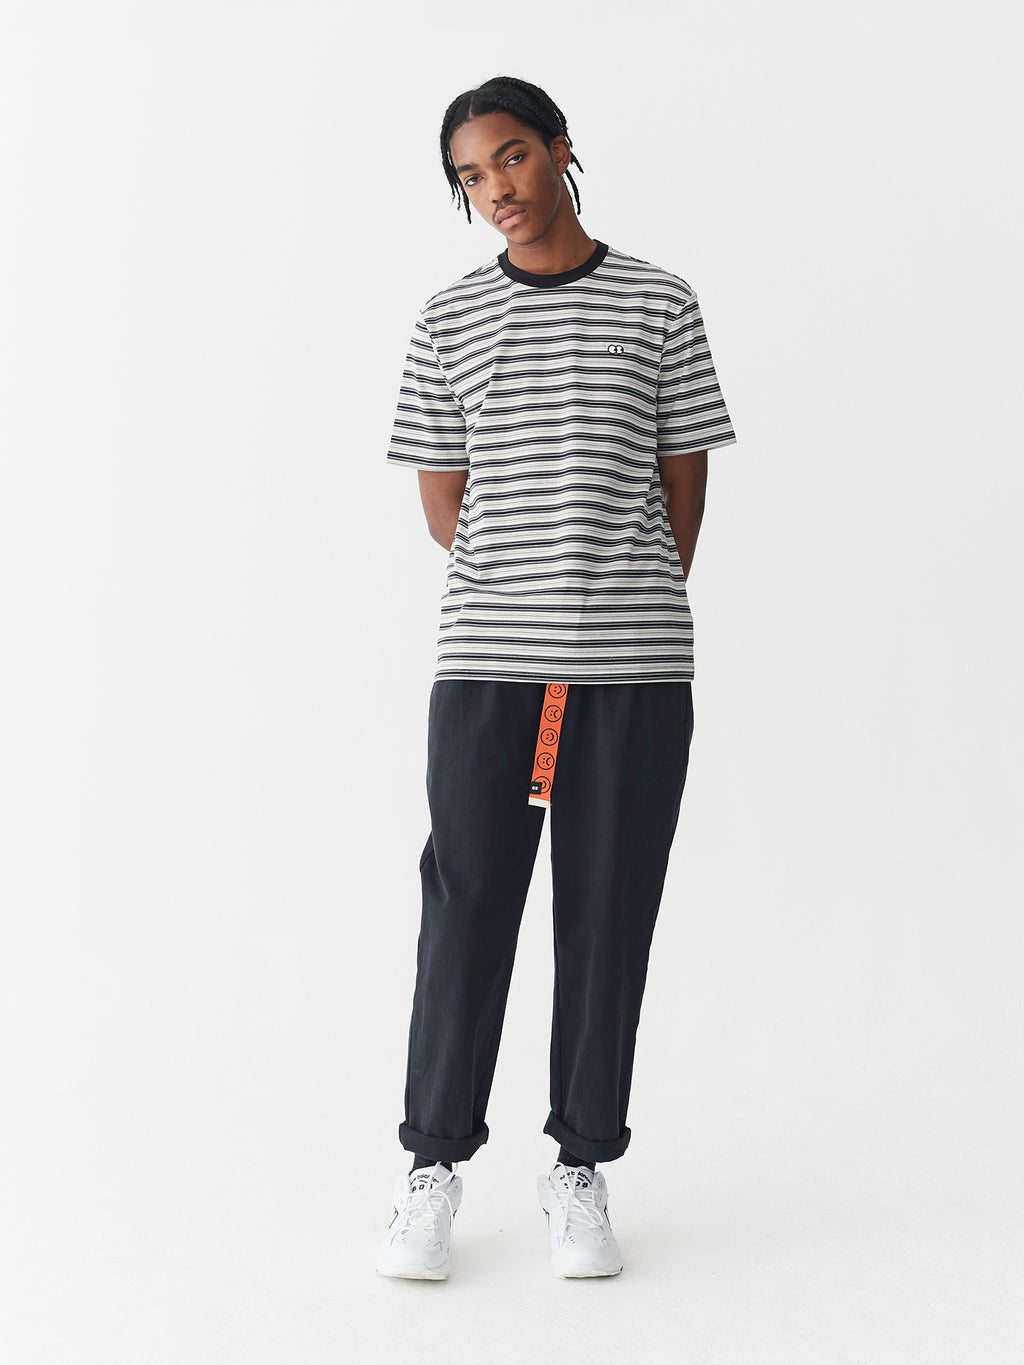 Lazy Oaf Greyscale Stripe T-Shirt